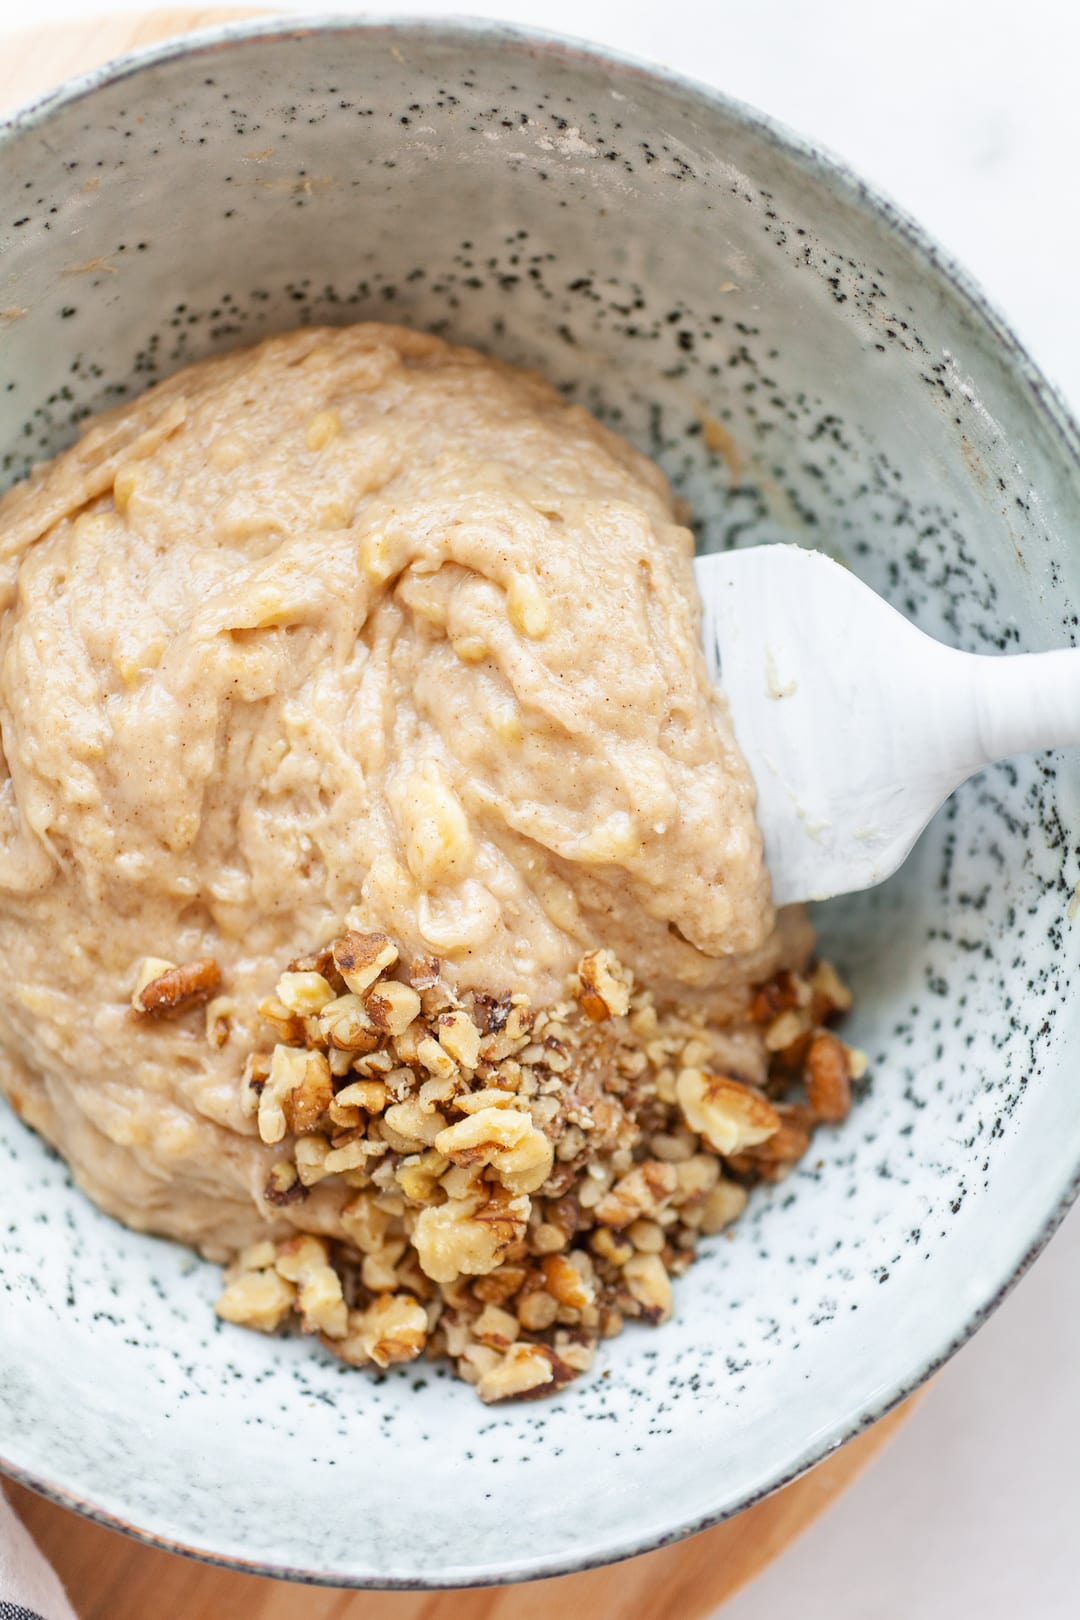 Instant Pot Banana Bread batter in a bowl with walnuts and a white spatula